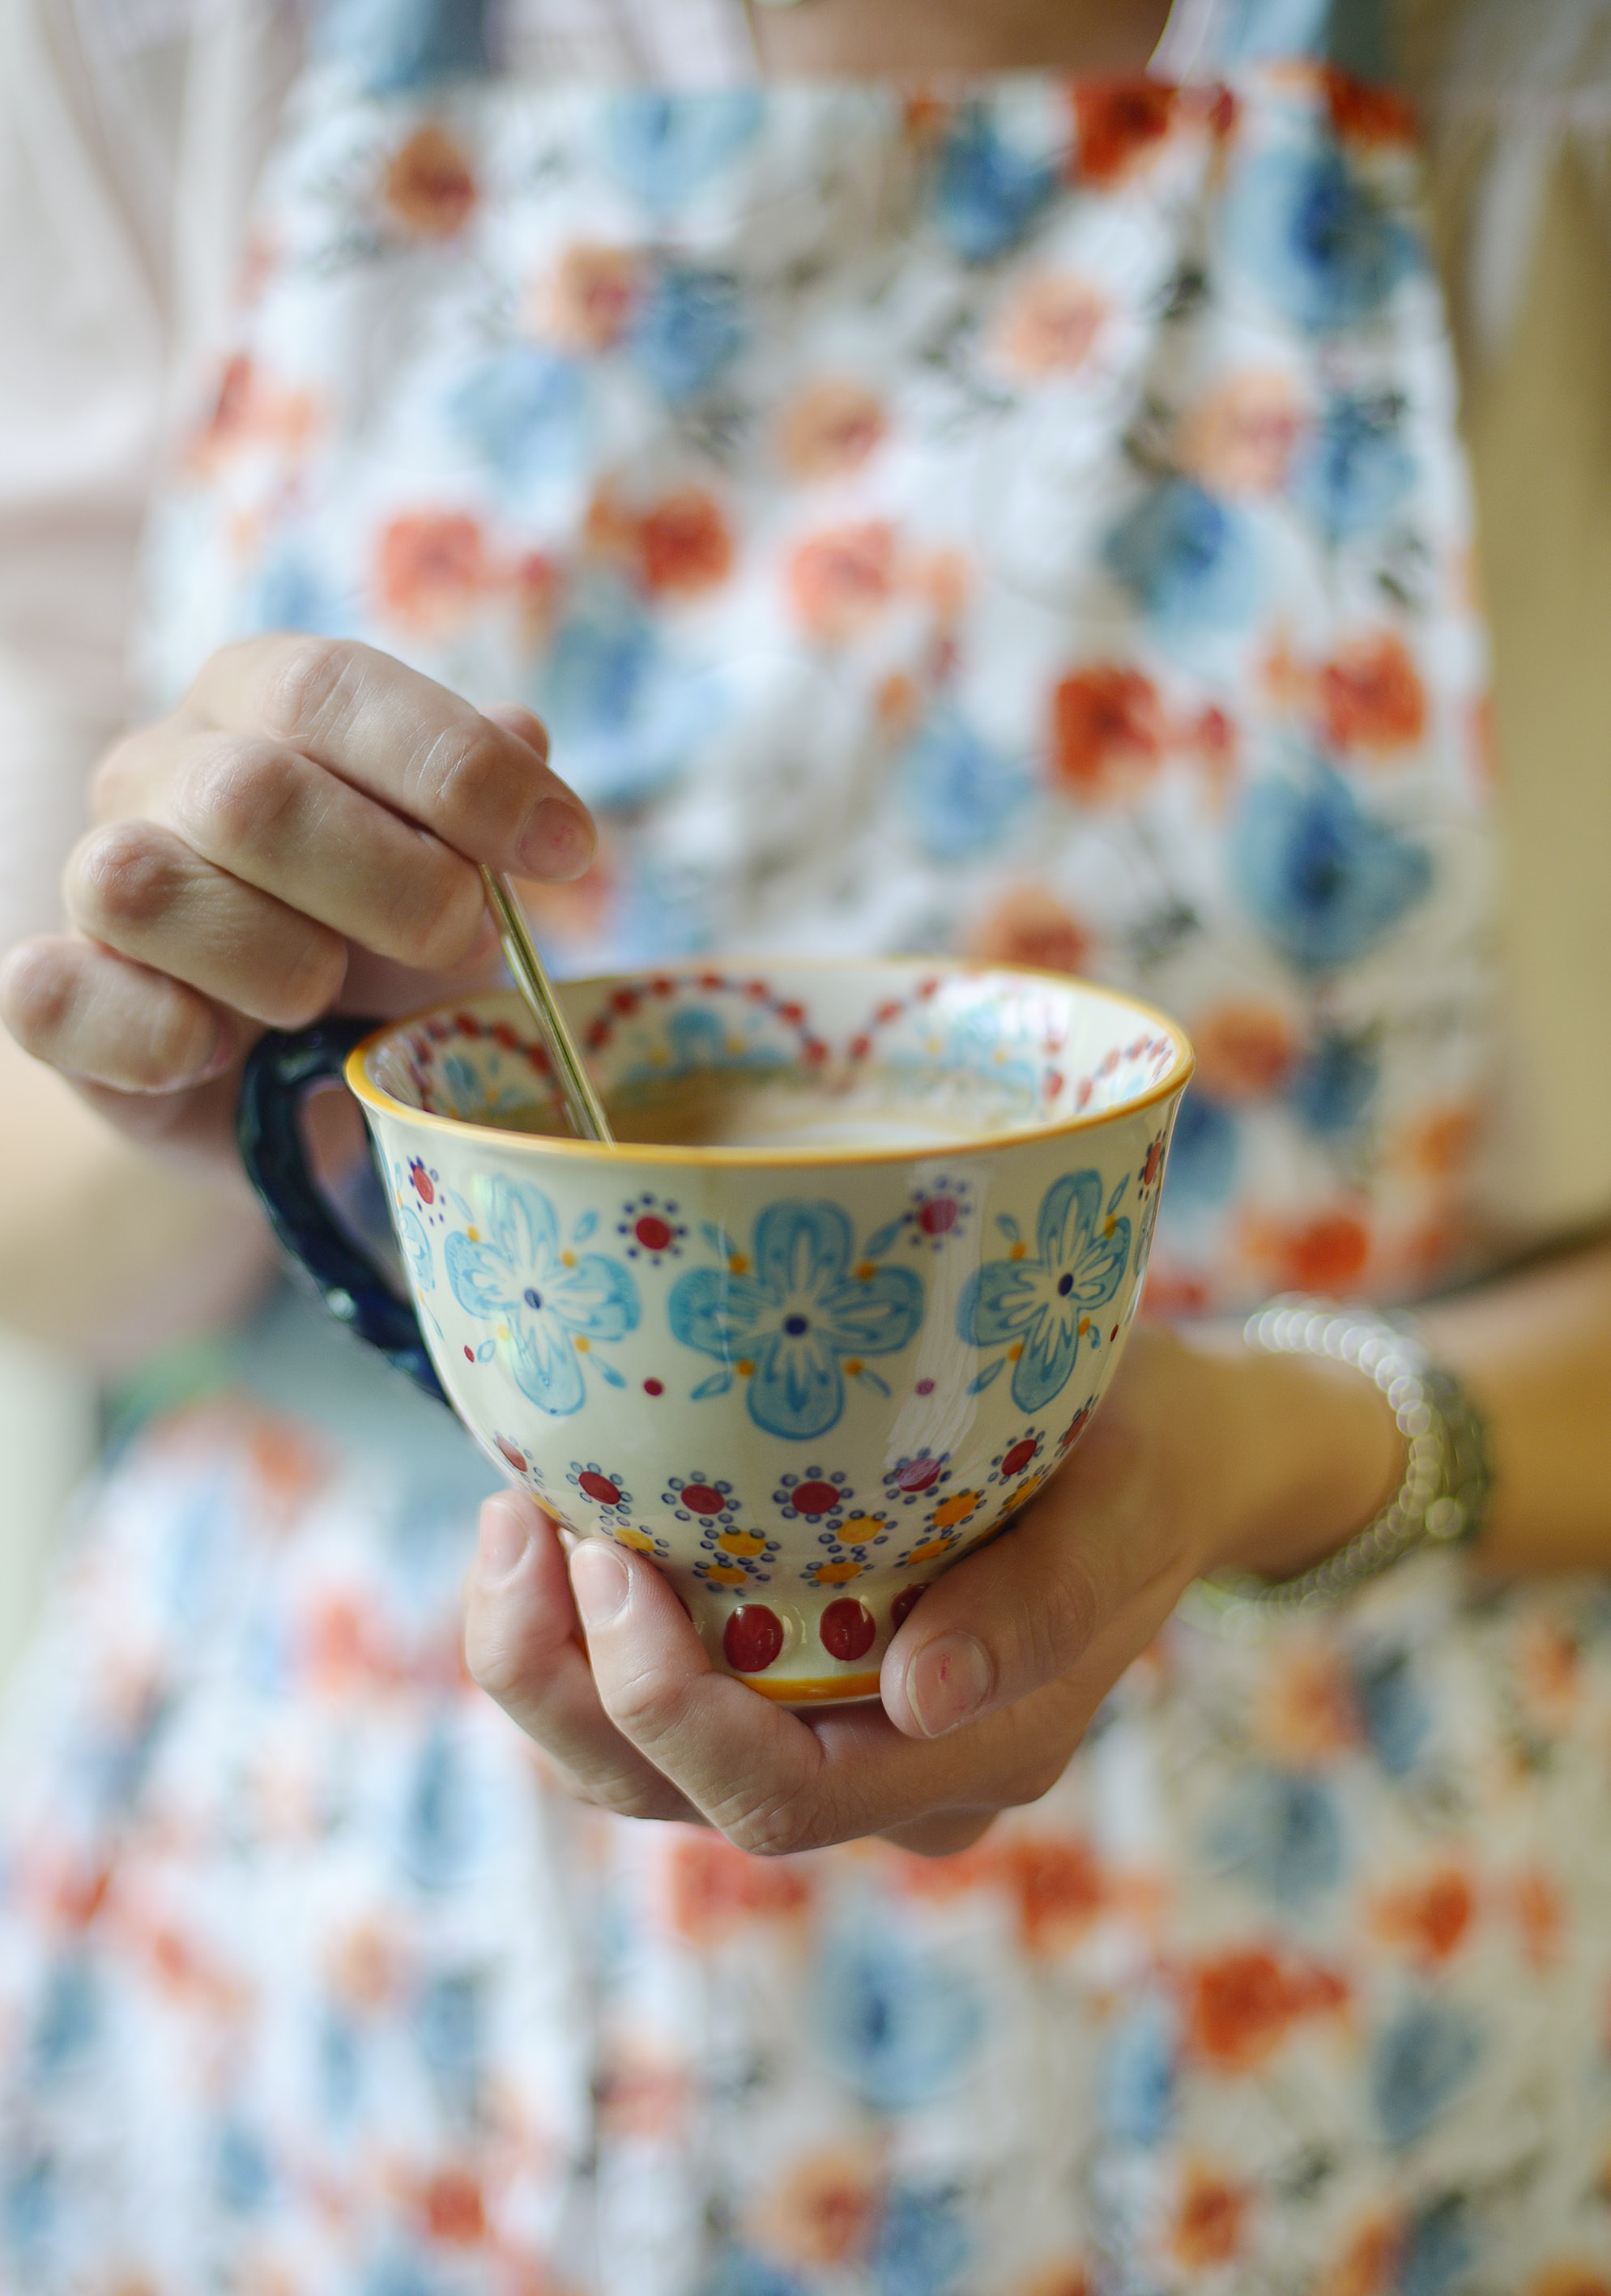 A woman in a floral dress stirring tea in a floral teacup